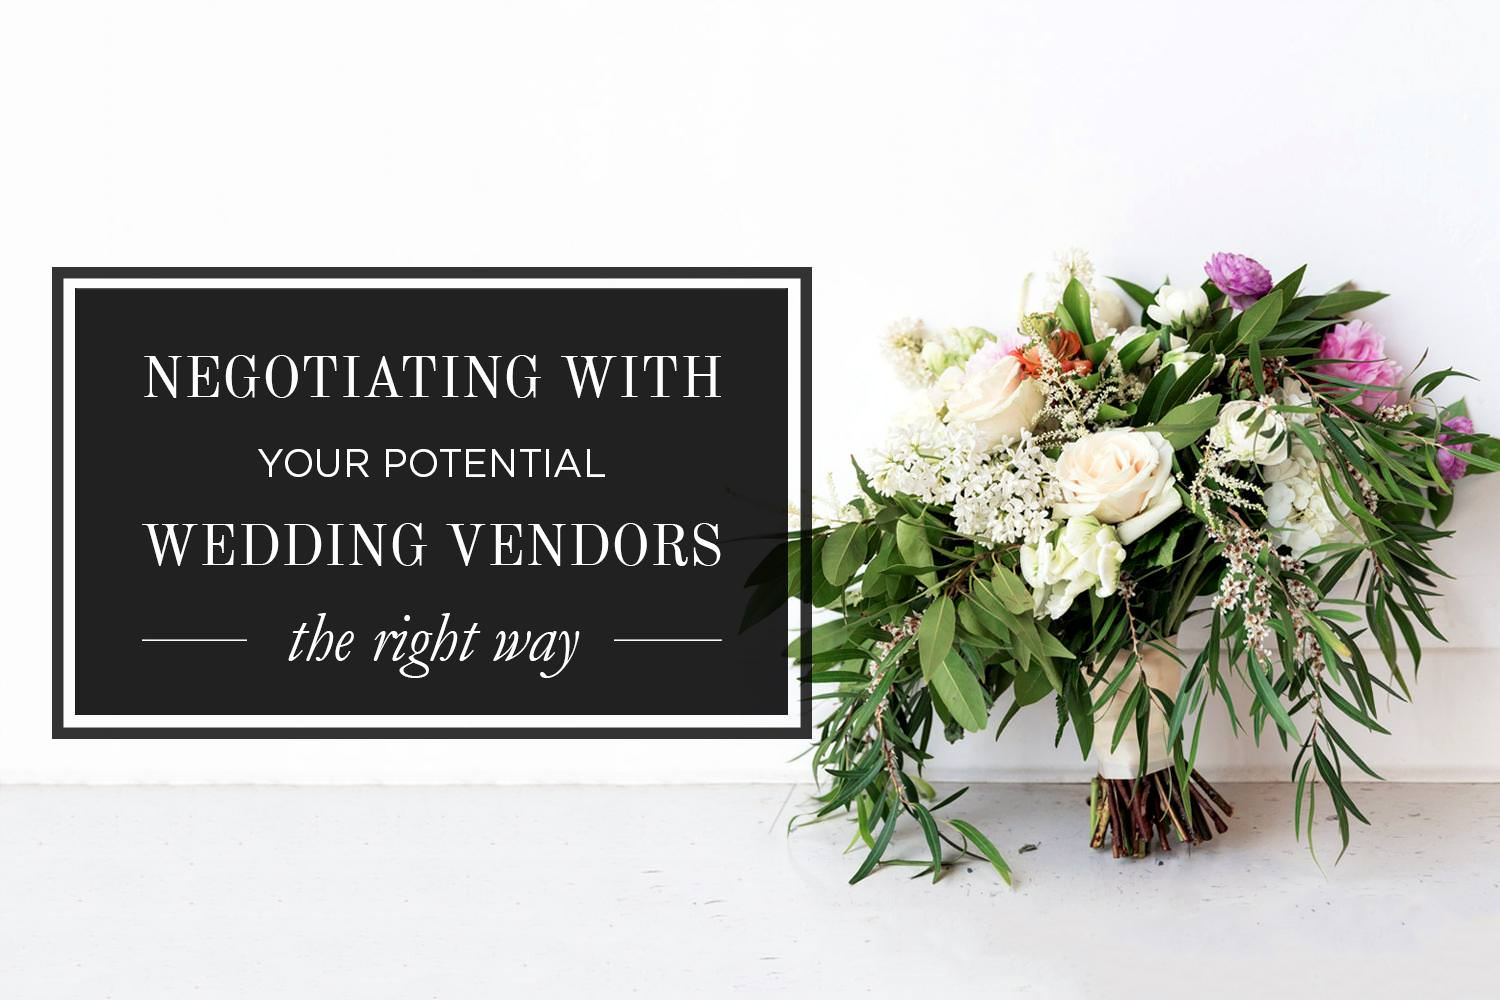 Negotiating with wedding vendors the right way, how to and not to negotiate with wedding vendors